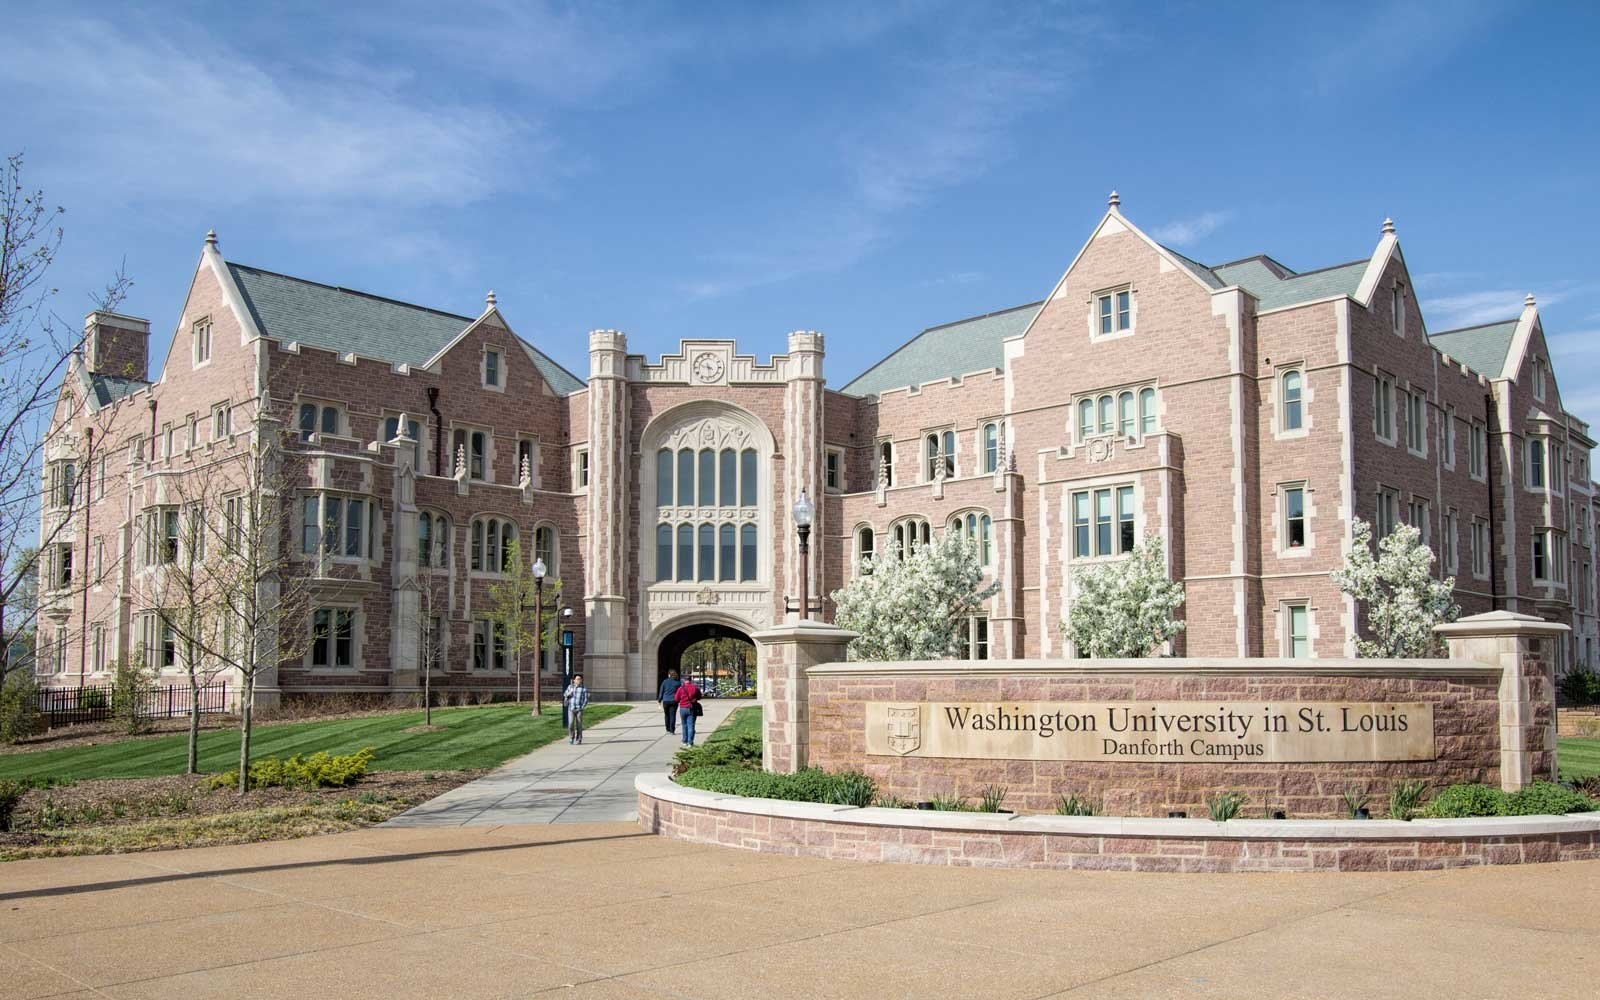 Washington University in St. Louis, Missouri